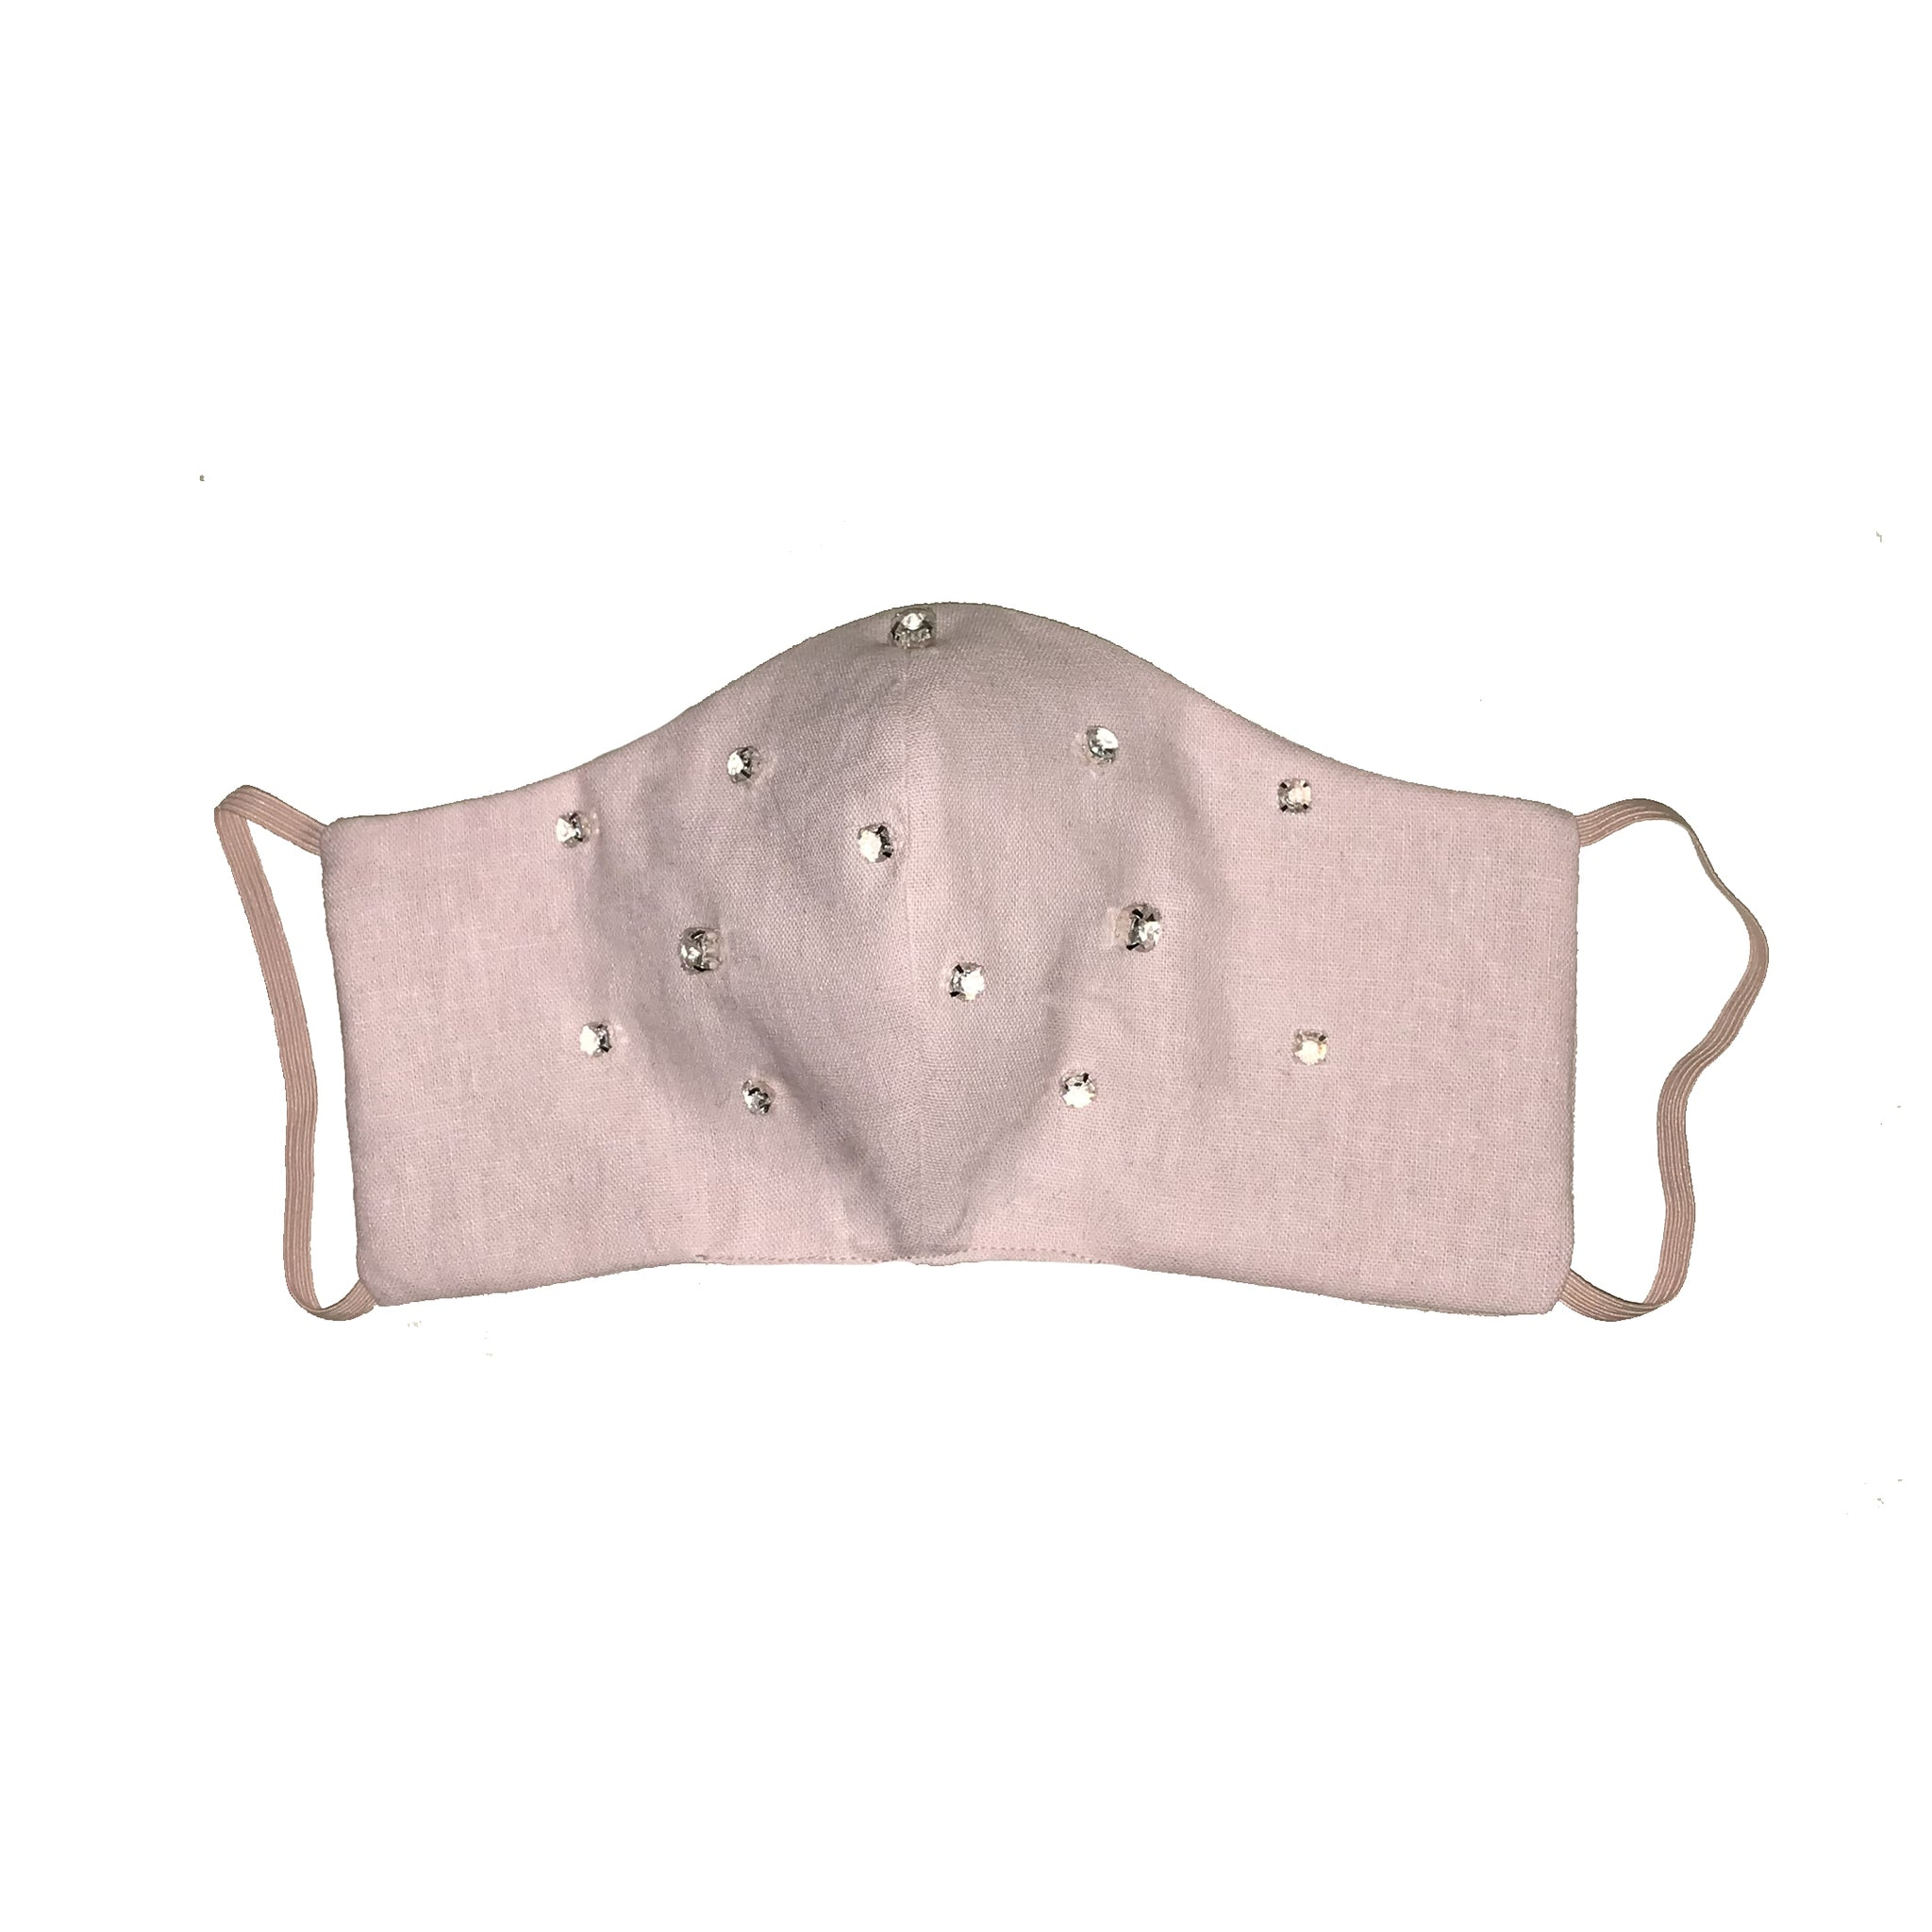 Bejewelled Face Mask Pale Pink all over jewel